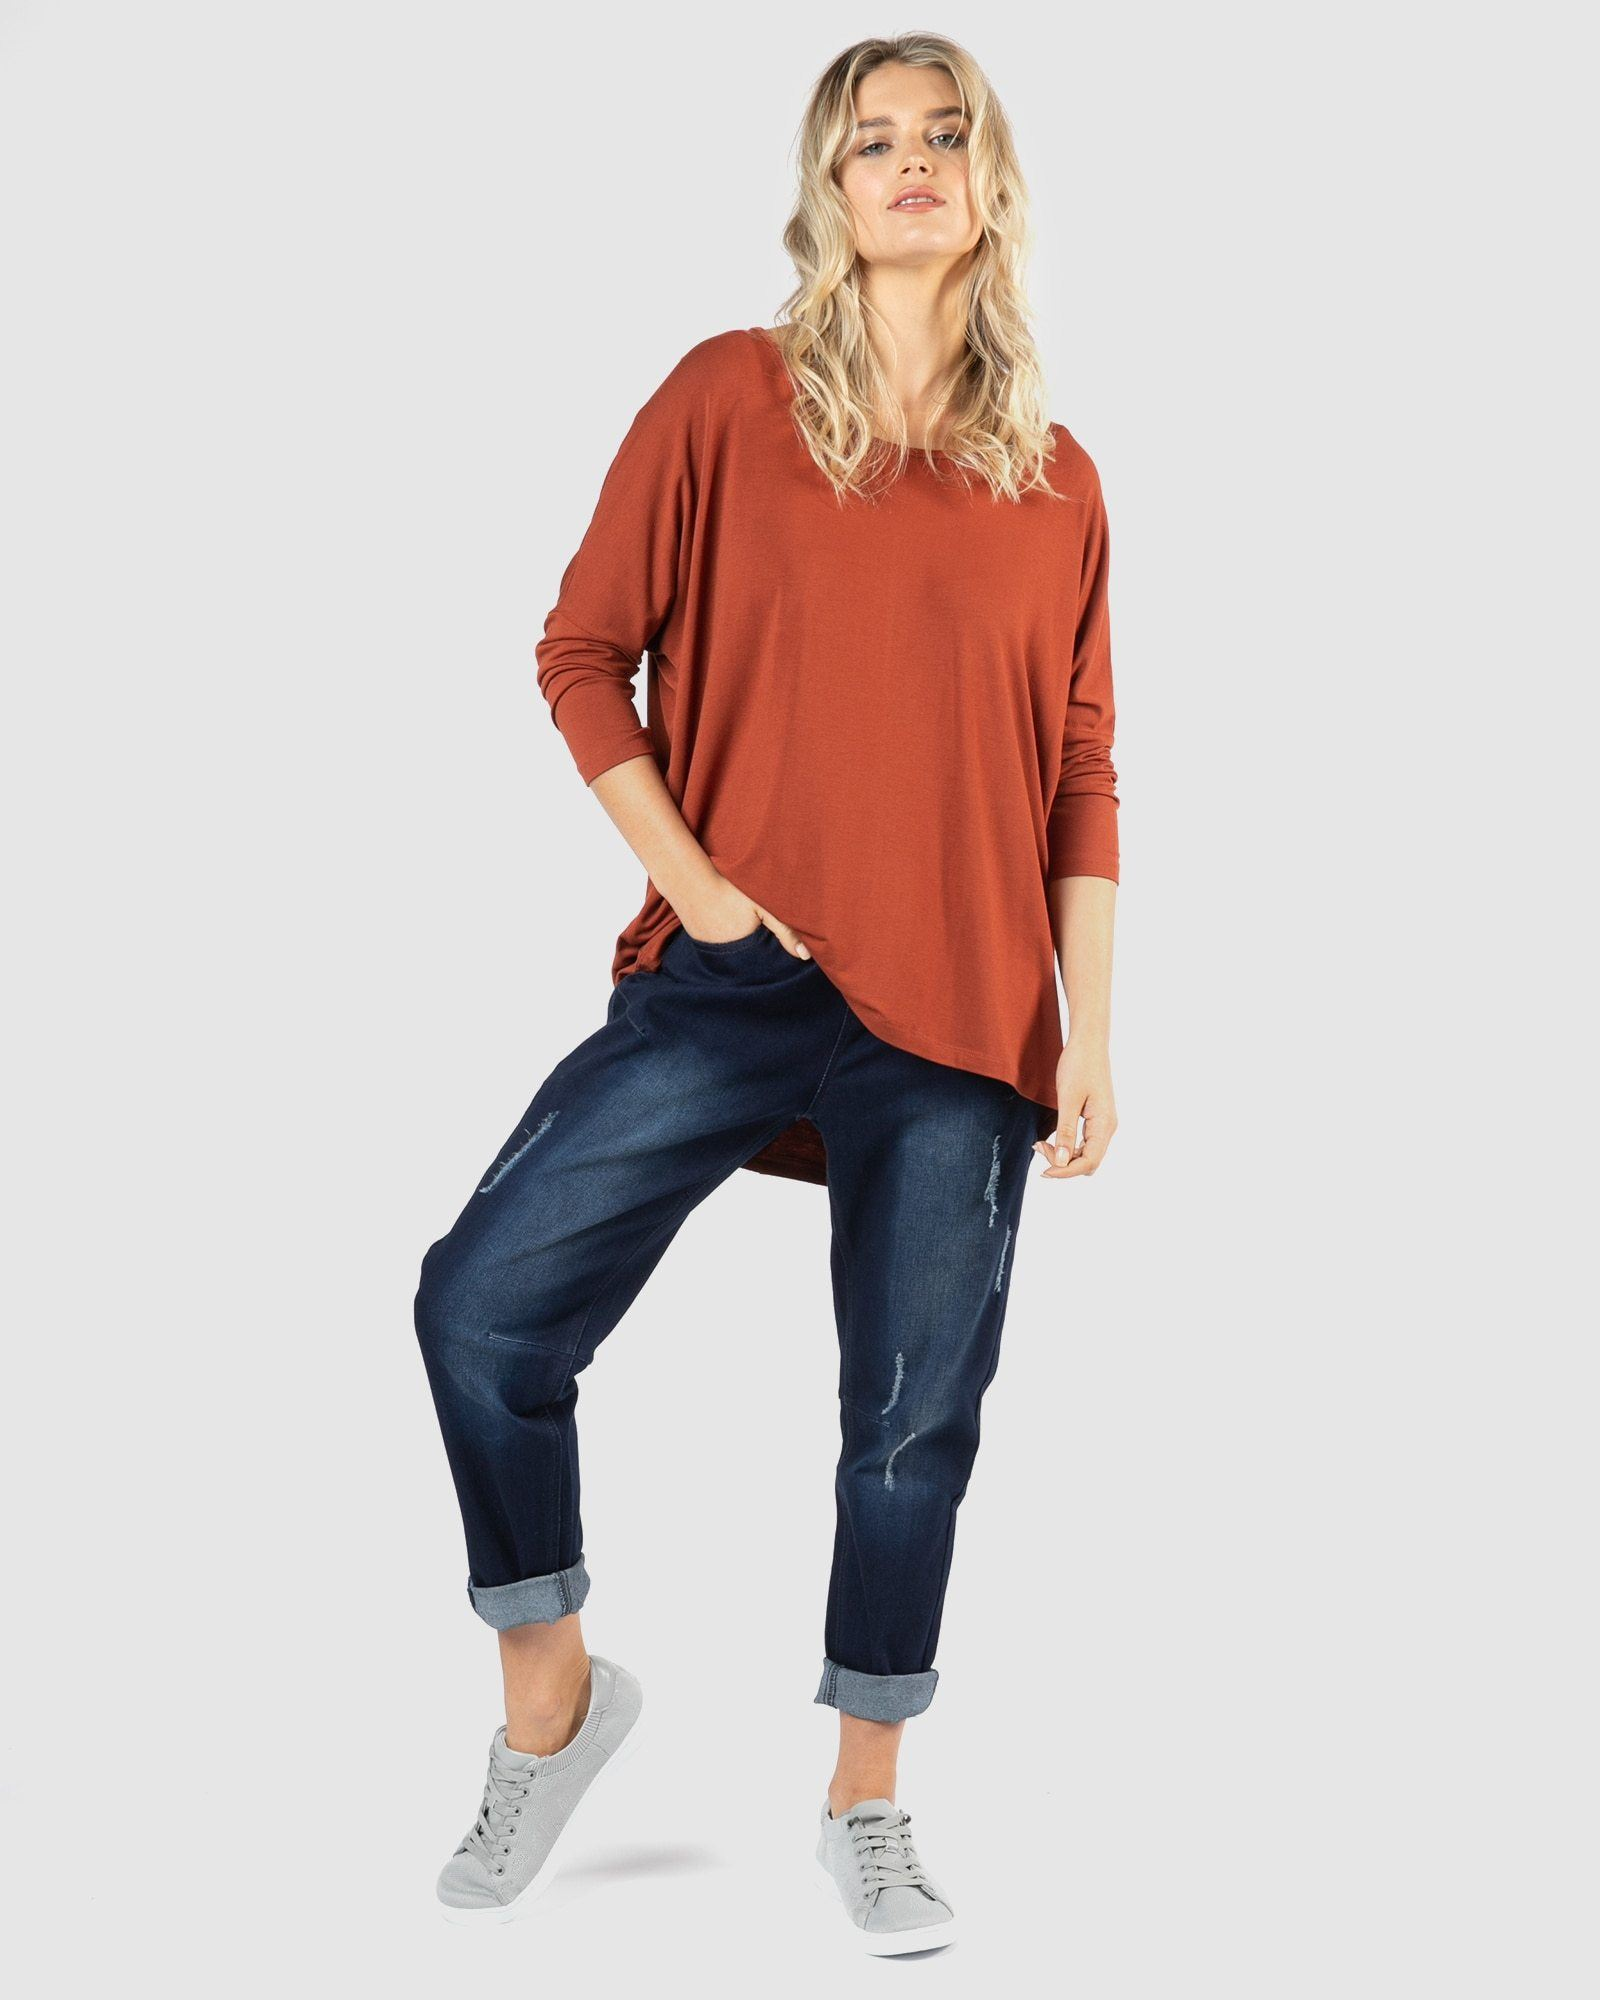 Betty Basics - Milan 3/4 Sleeve Top - Terracotta Womens Betty Basics